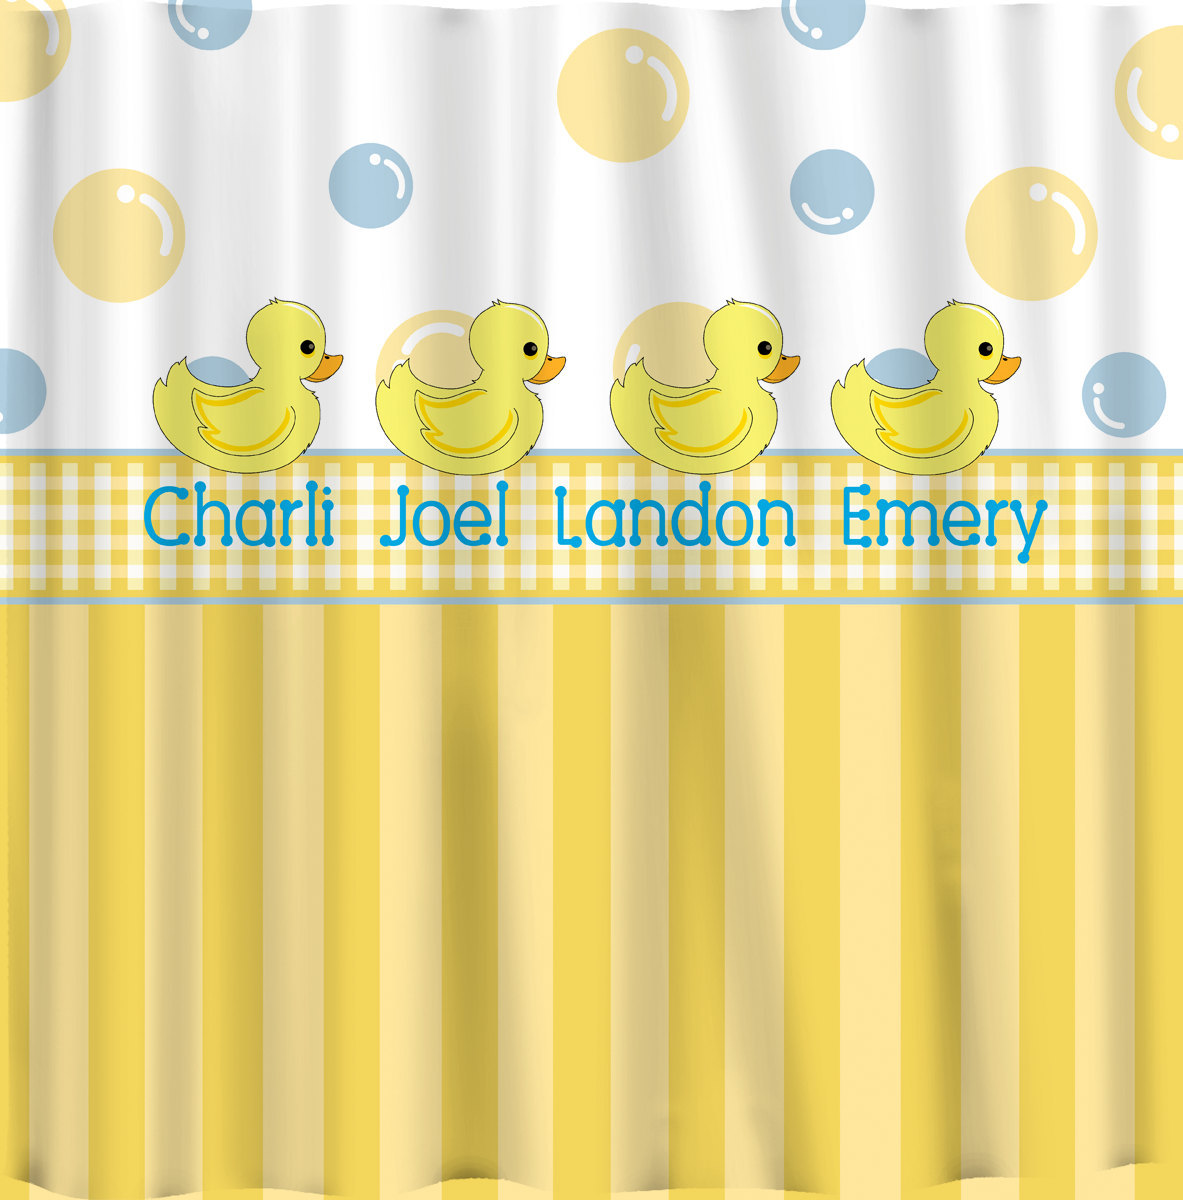 Personalized Rubber Duck Shower Curtains -Yellow with blue accents - Monogrammed